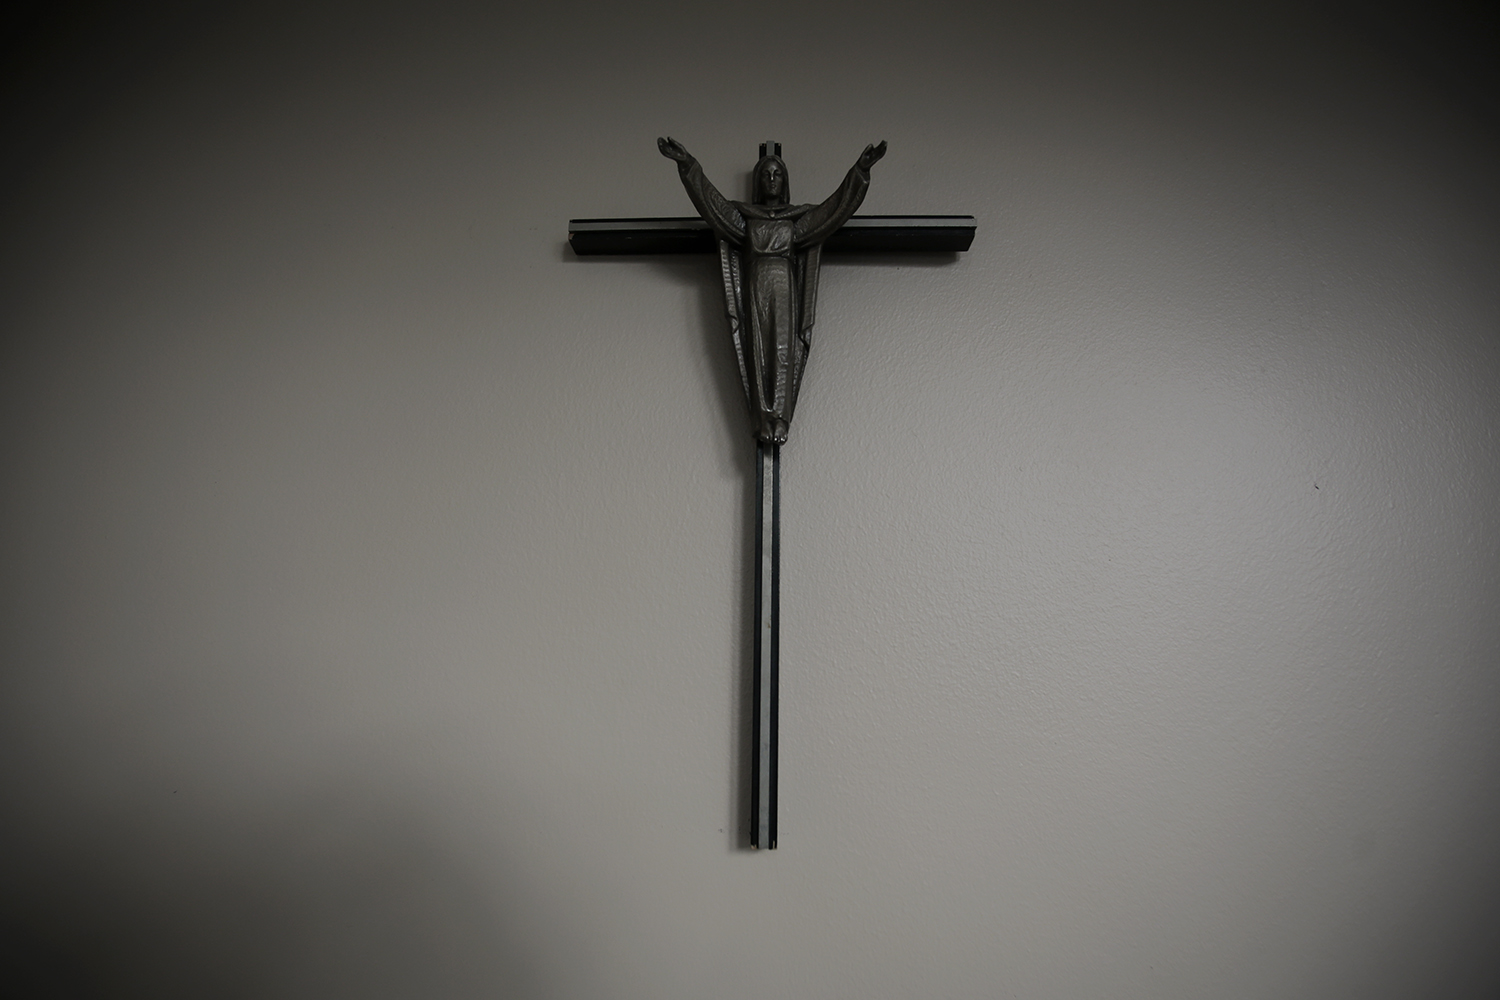 A crucifix hangs on the wall of the entryway on Thursday, Sept. 4, 2014 at the Eastern Catholic Re-Evangelization Center in Bloomfield Township, MI. Tim Galloway for the New York Times